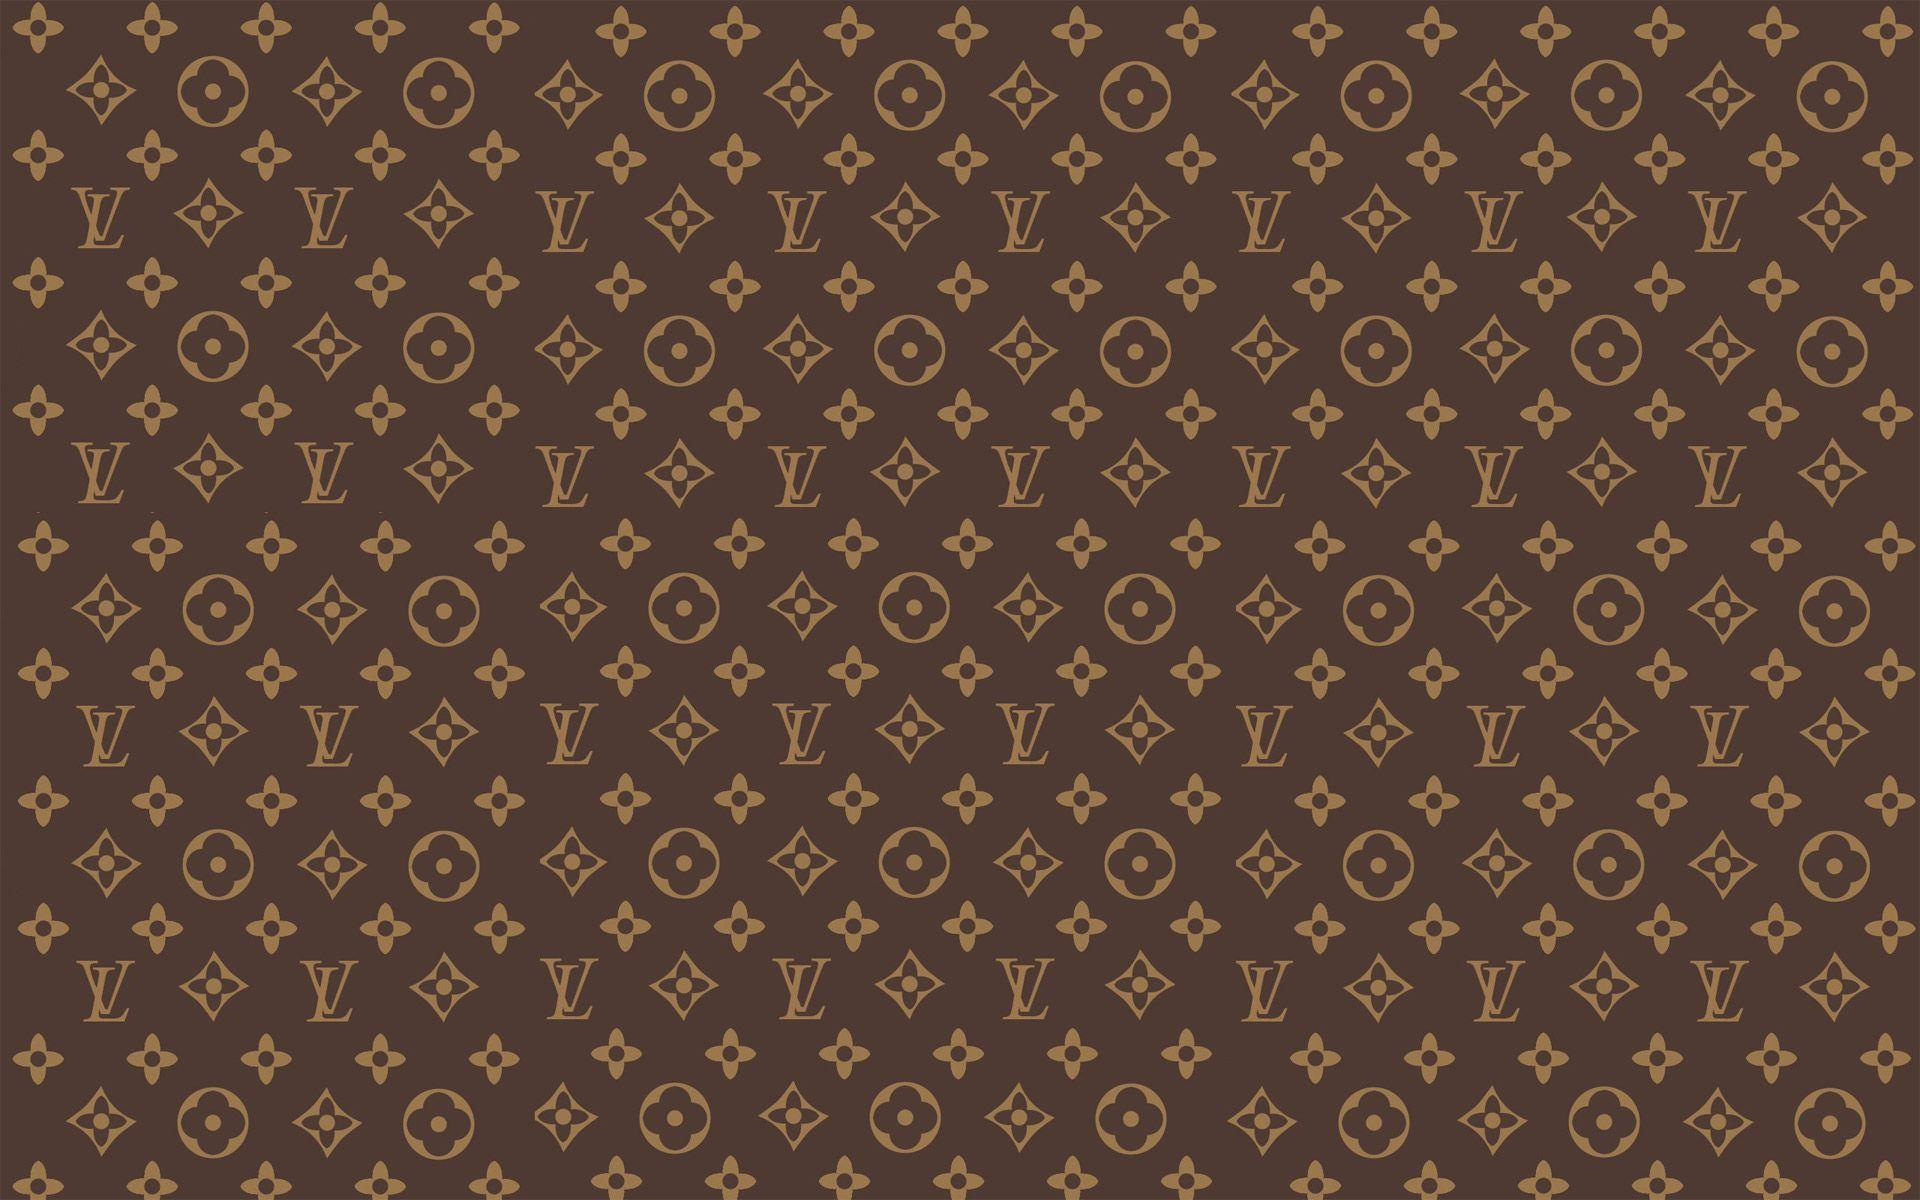 Louis vuitton backgrounds wallpaper cave louis vuitton wallpapers full hd wallpaper search page 2 voltagebd Choice Image